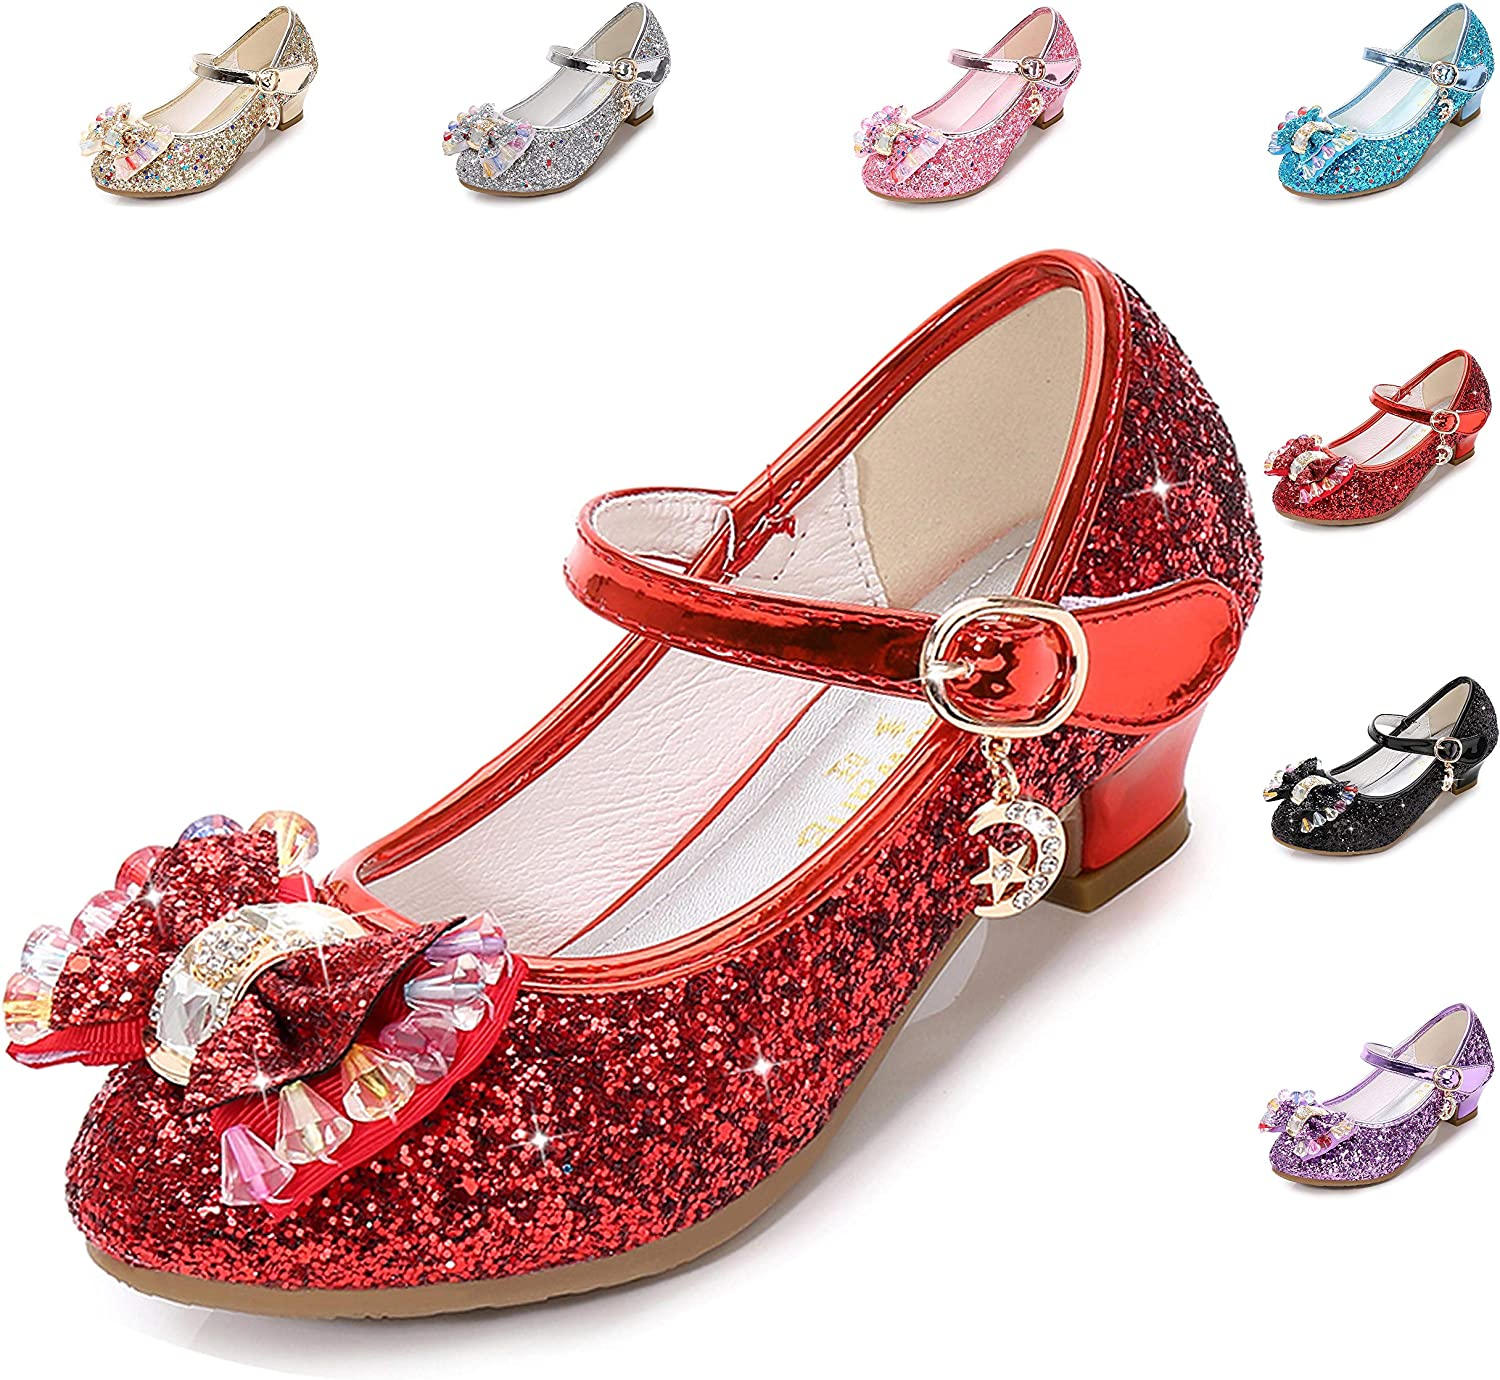 Little Girl's Adorable Sparkle Princess Party Shoes